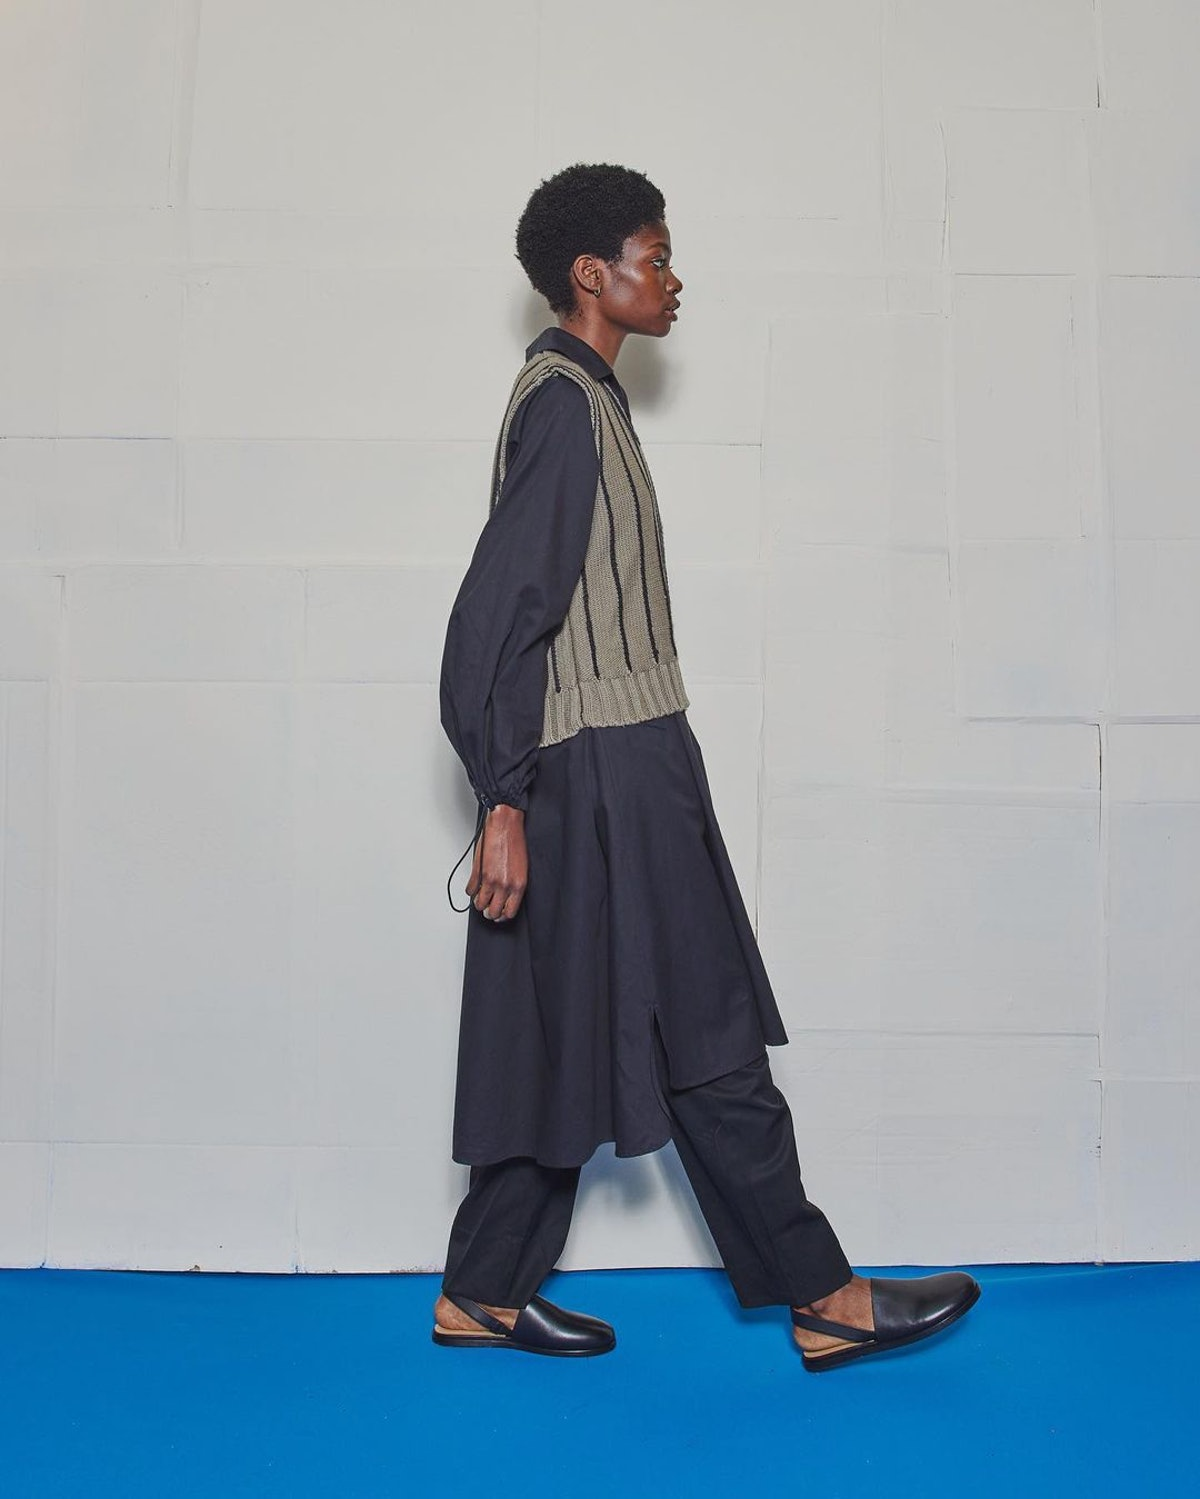 Model in vest and dress with sandals